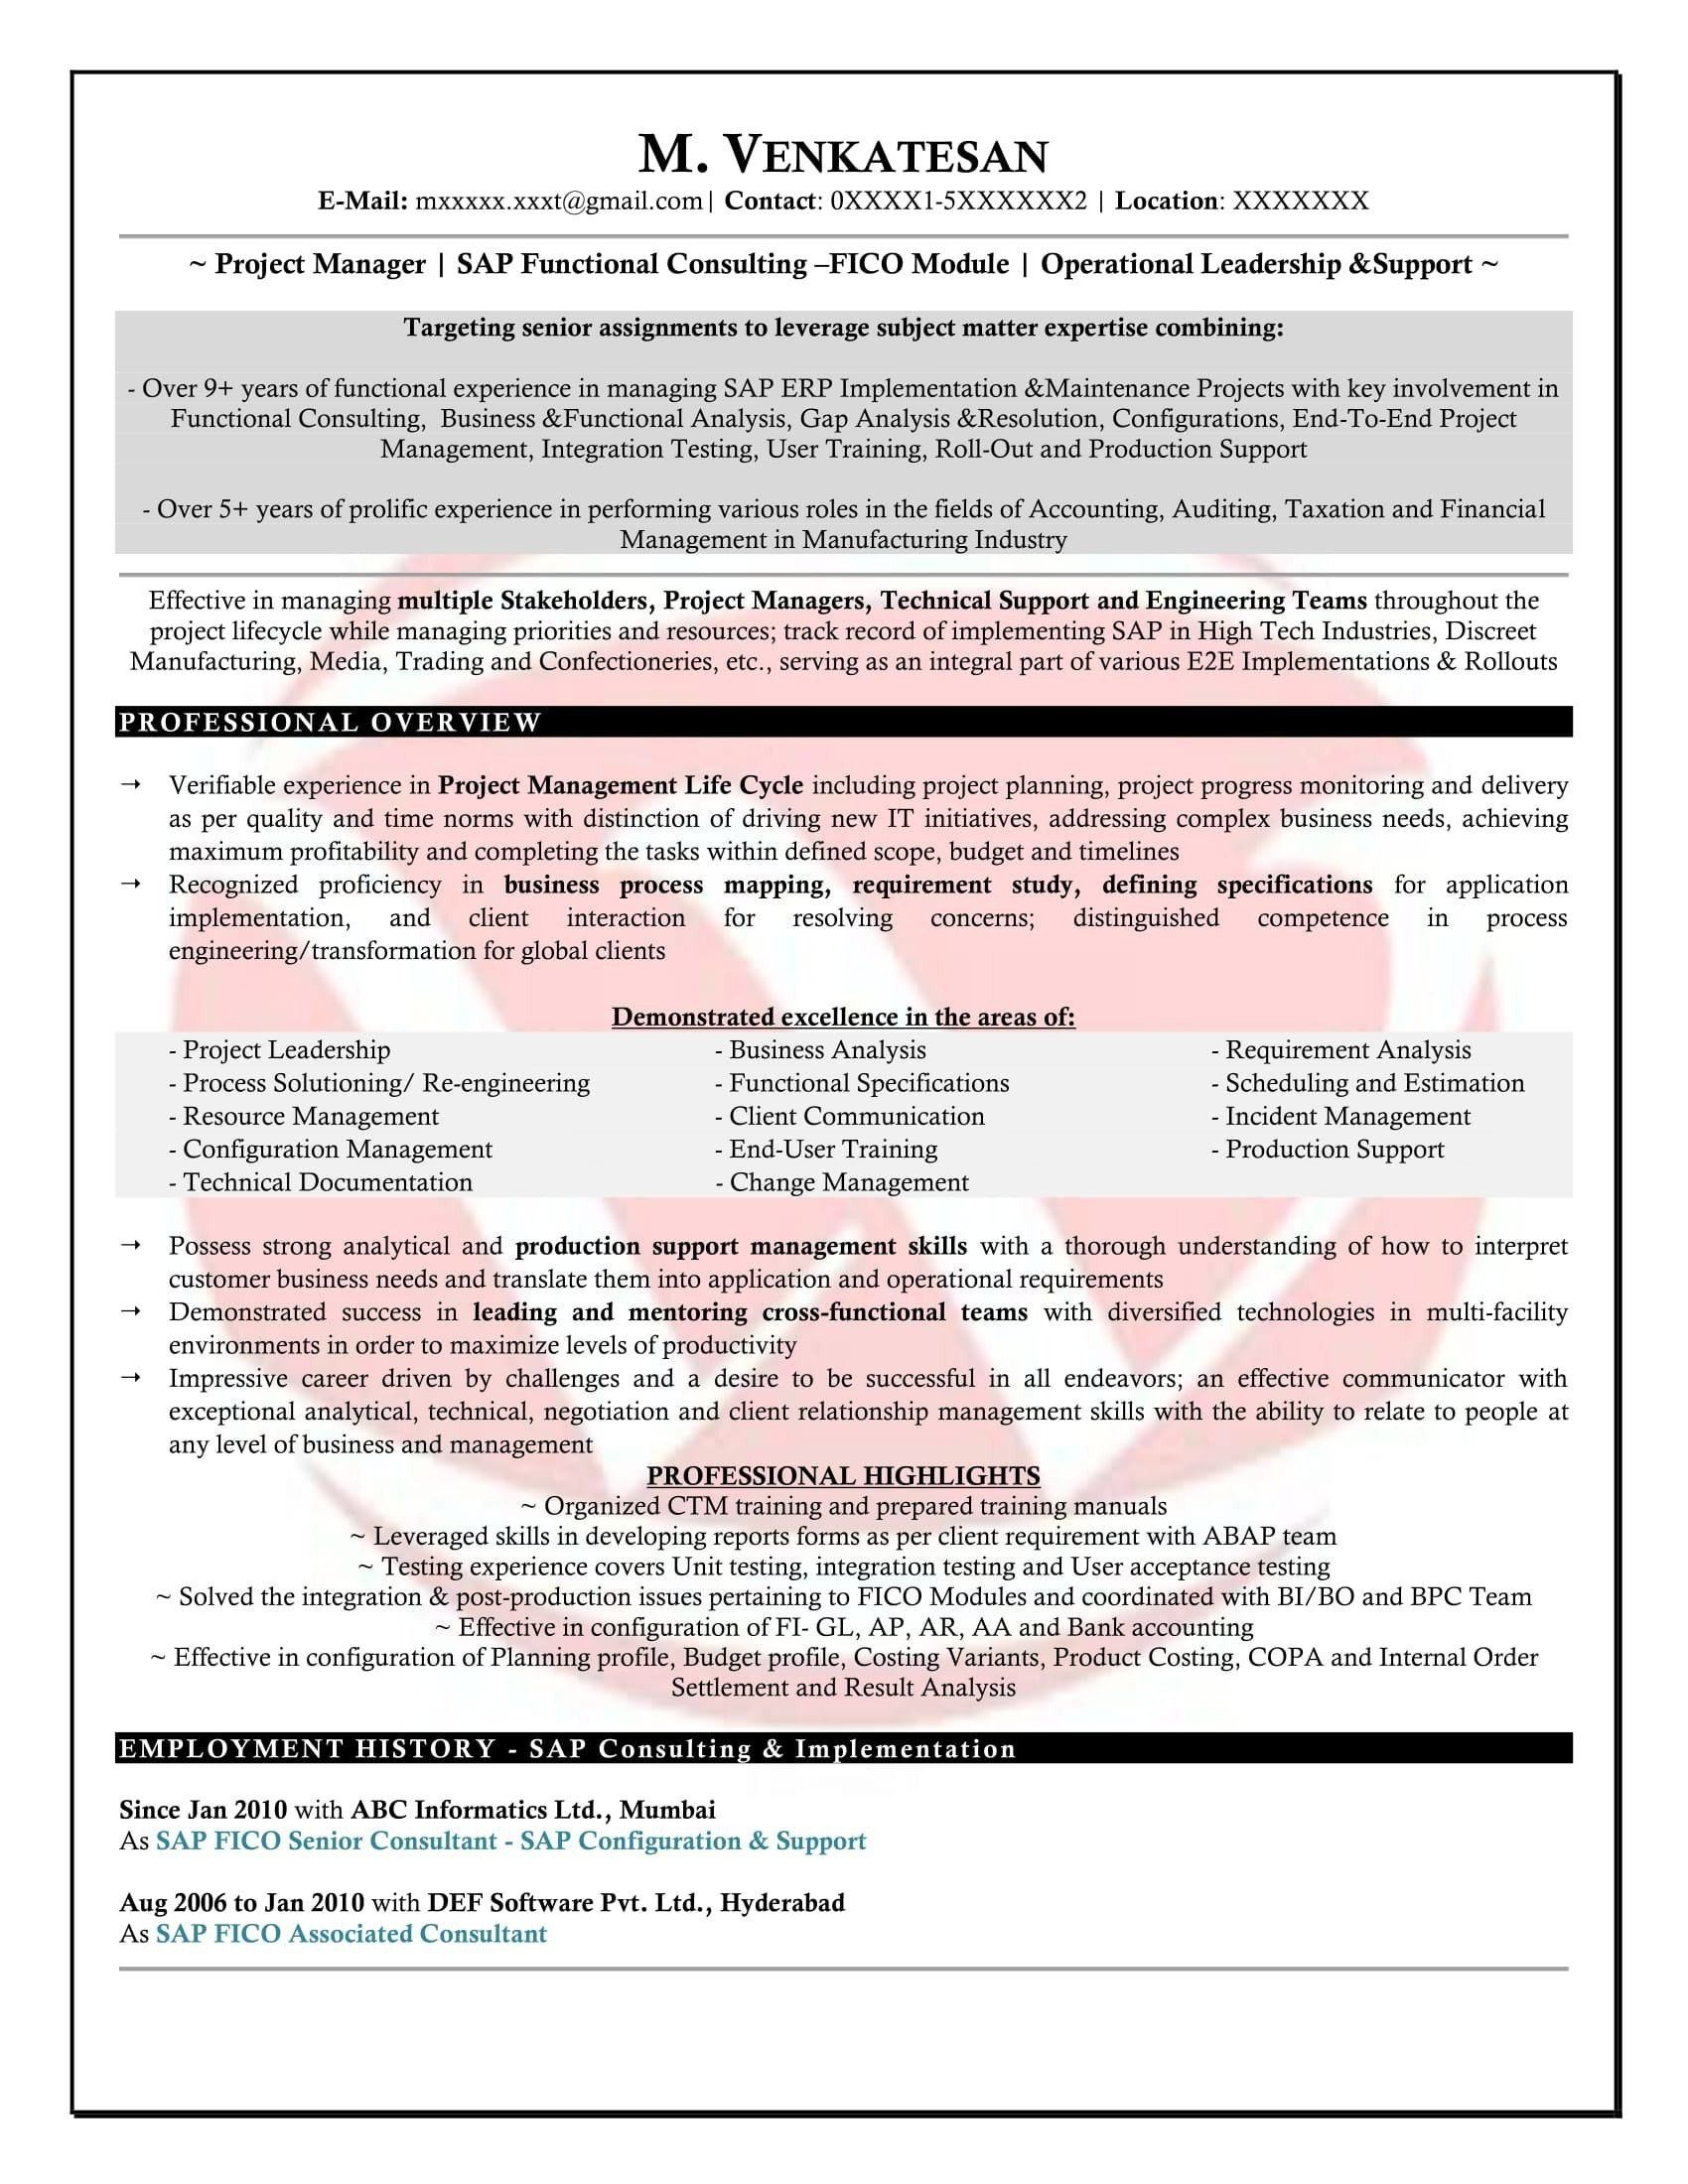 5 Years Experience Resume Beautiful Consulting Resume